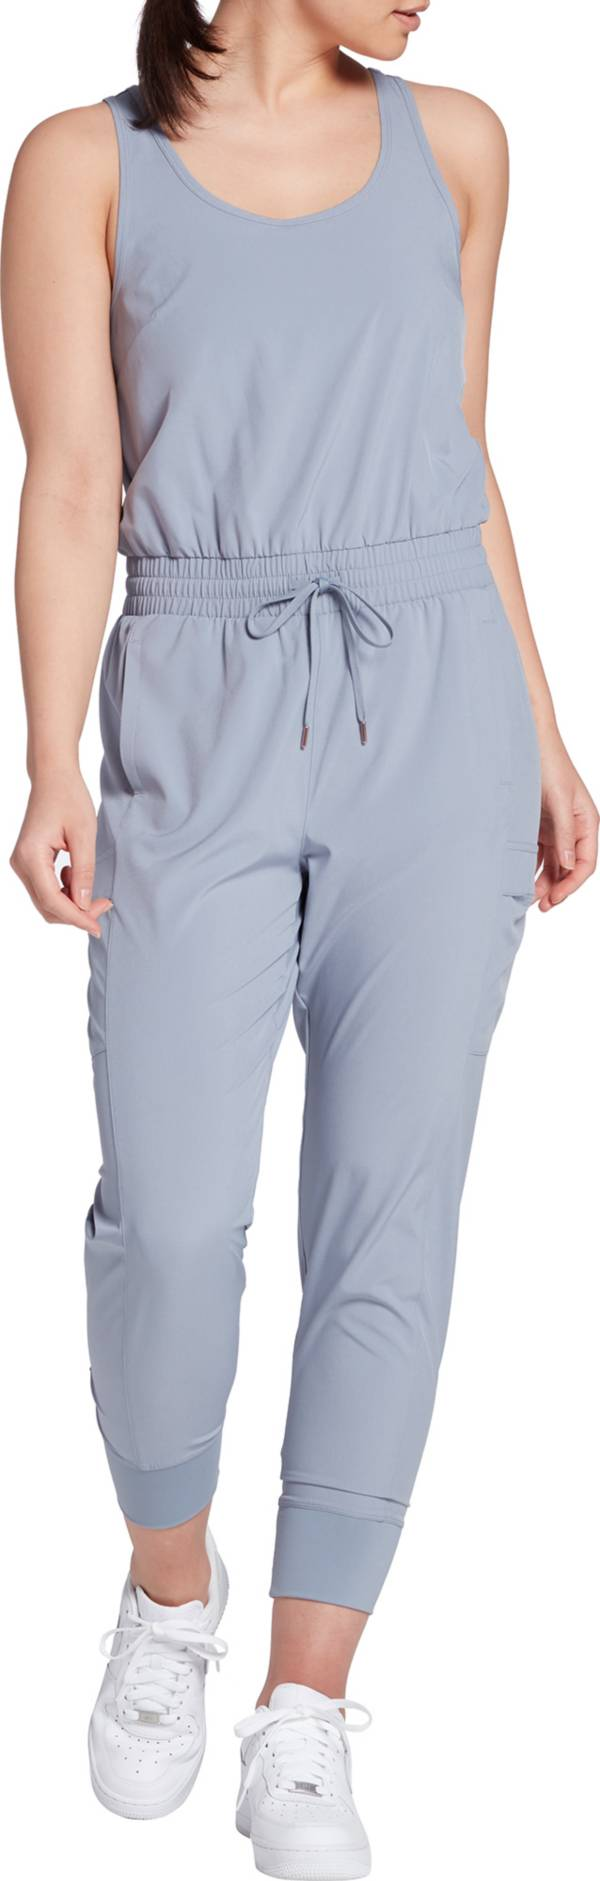 CALIA by Carrie Underwood Women's Cargo Pocket Jumpsuit product image